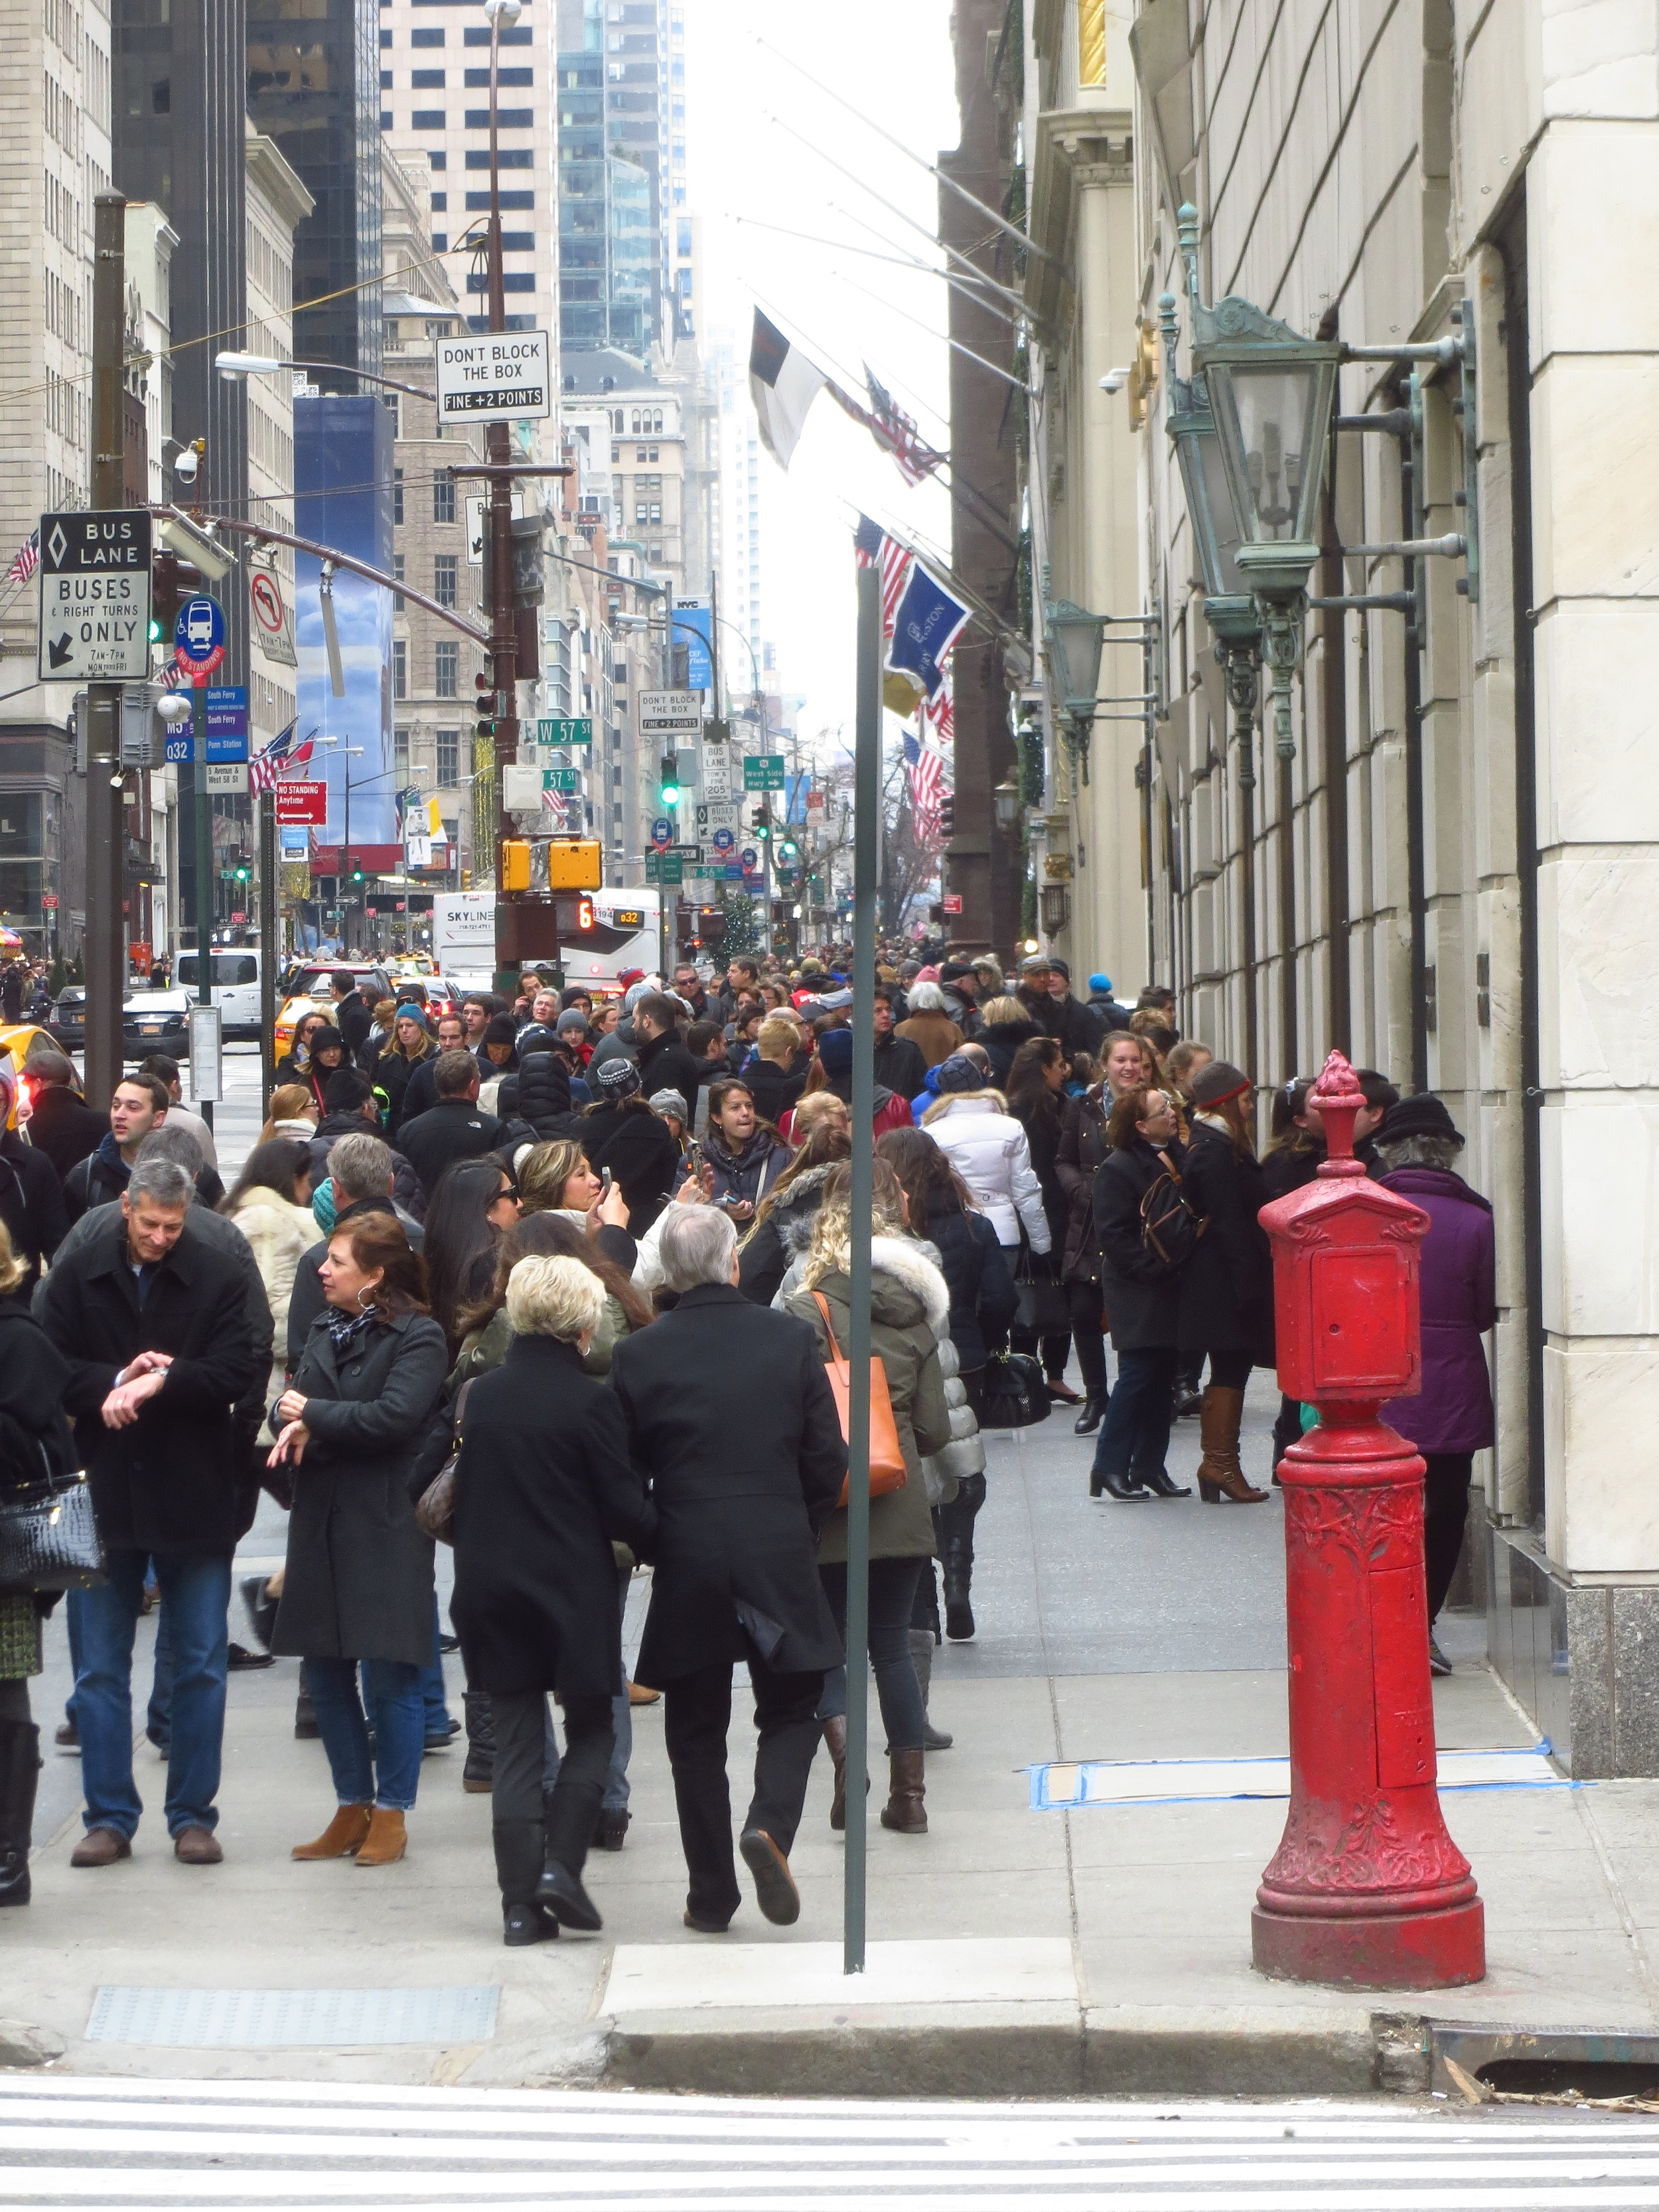 5th Avenue holiday crowd (outside Bergdorf Goodman)